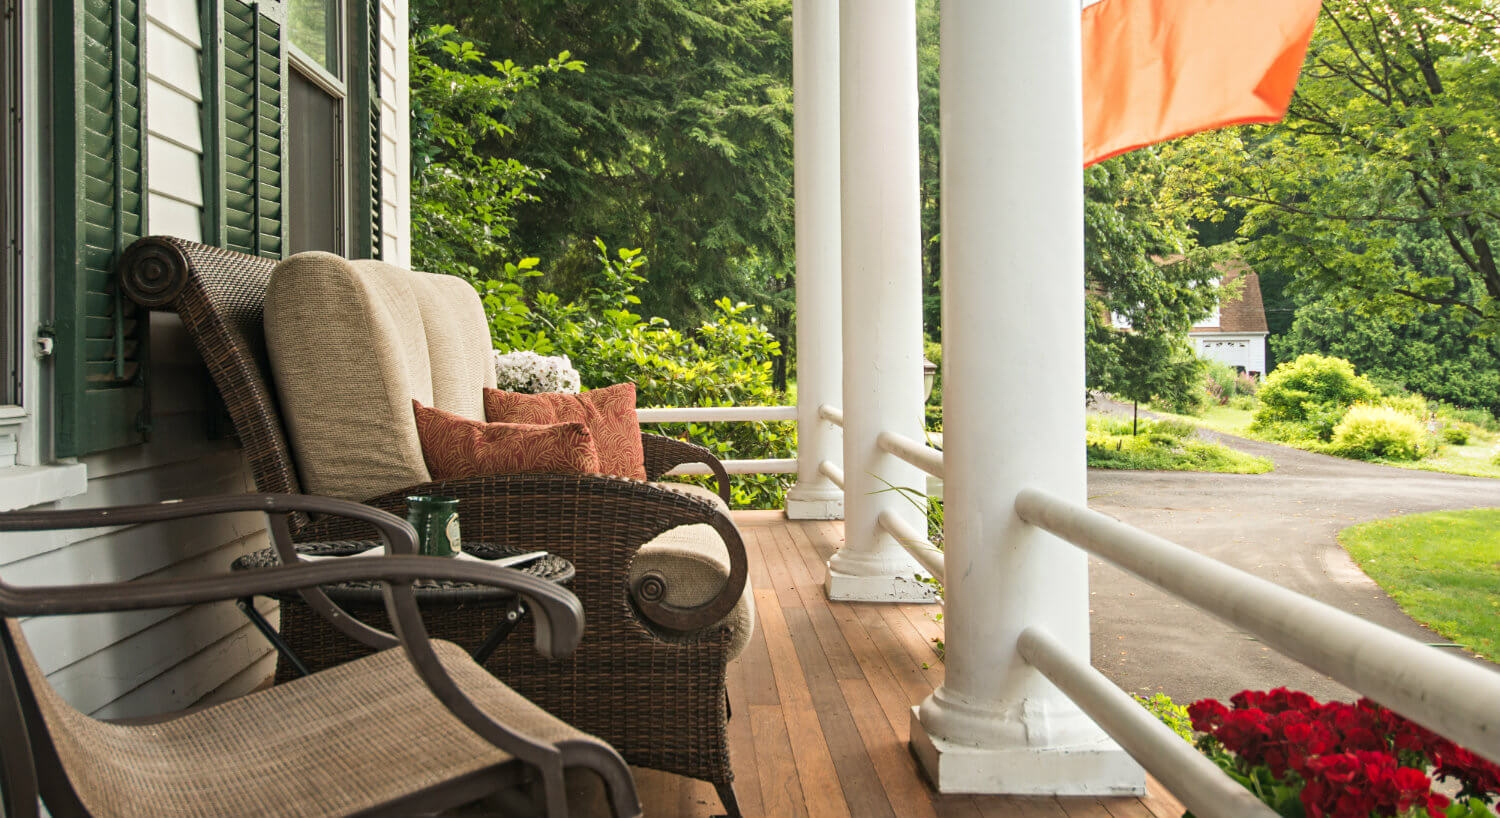 Cozy front porch setting with large white columns and comfortable seating for numerous people